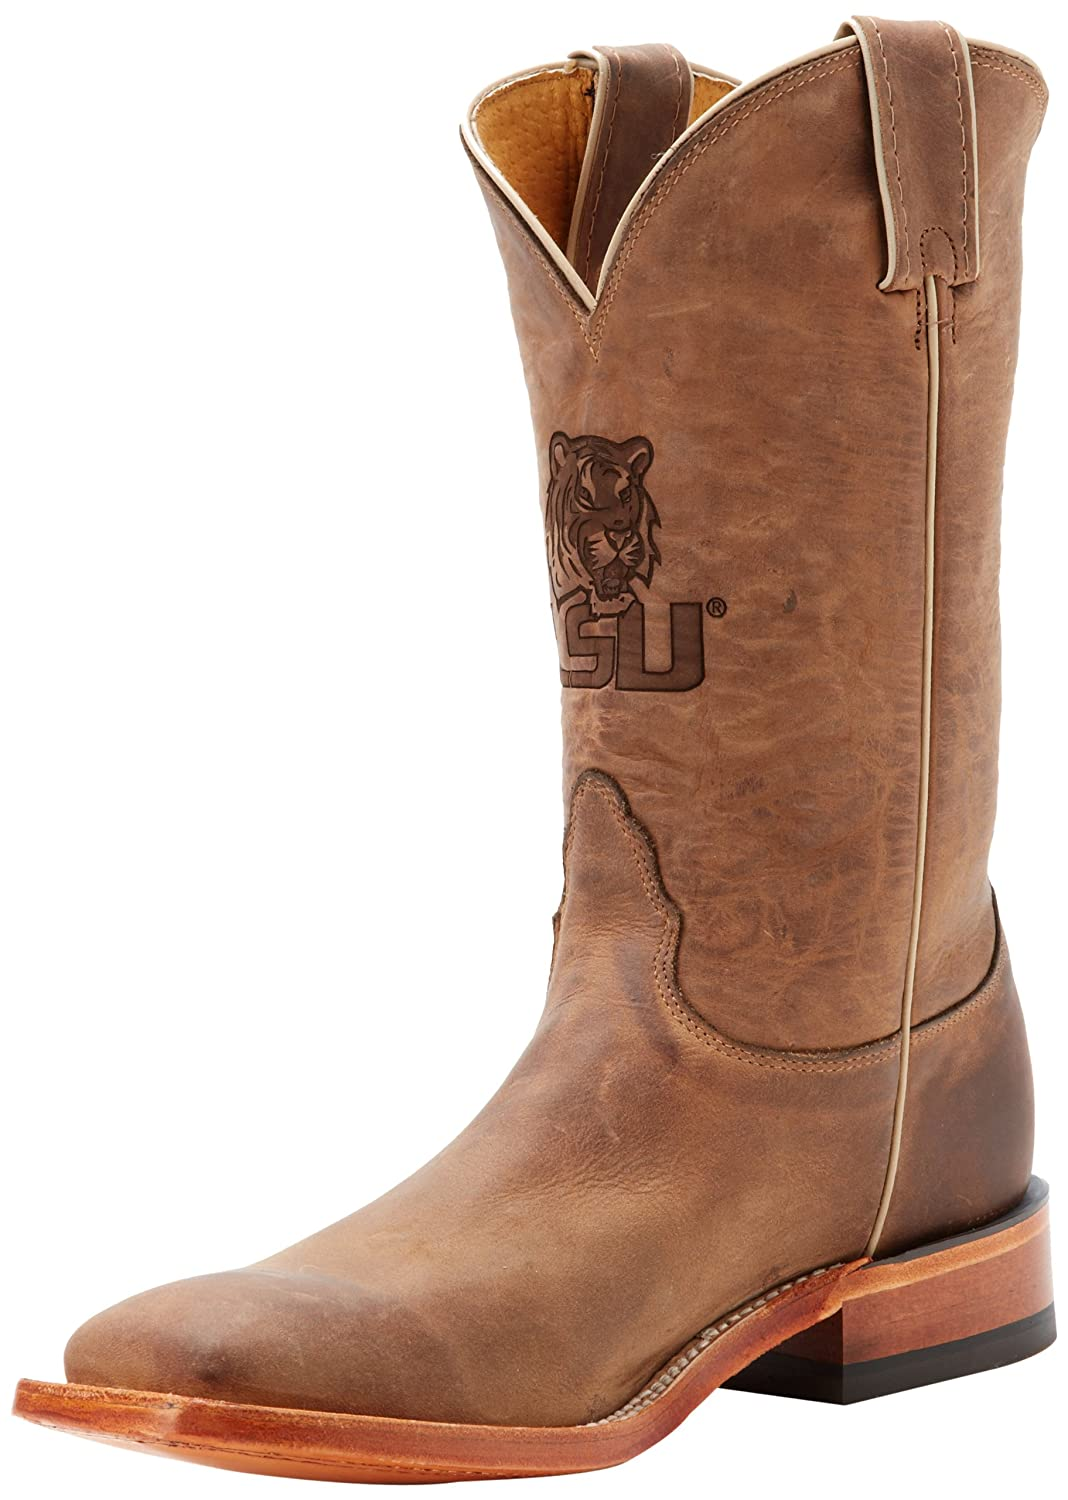 Nocona Boots Men's Louisiana State Boot